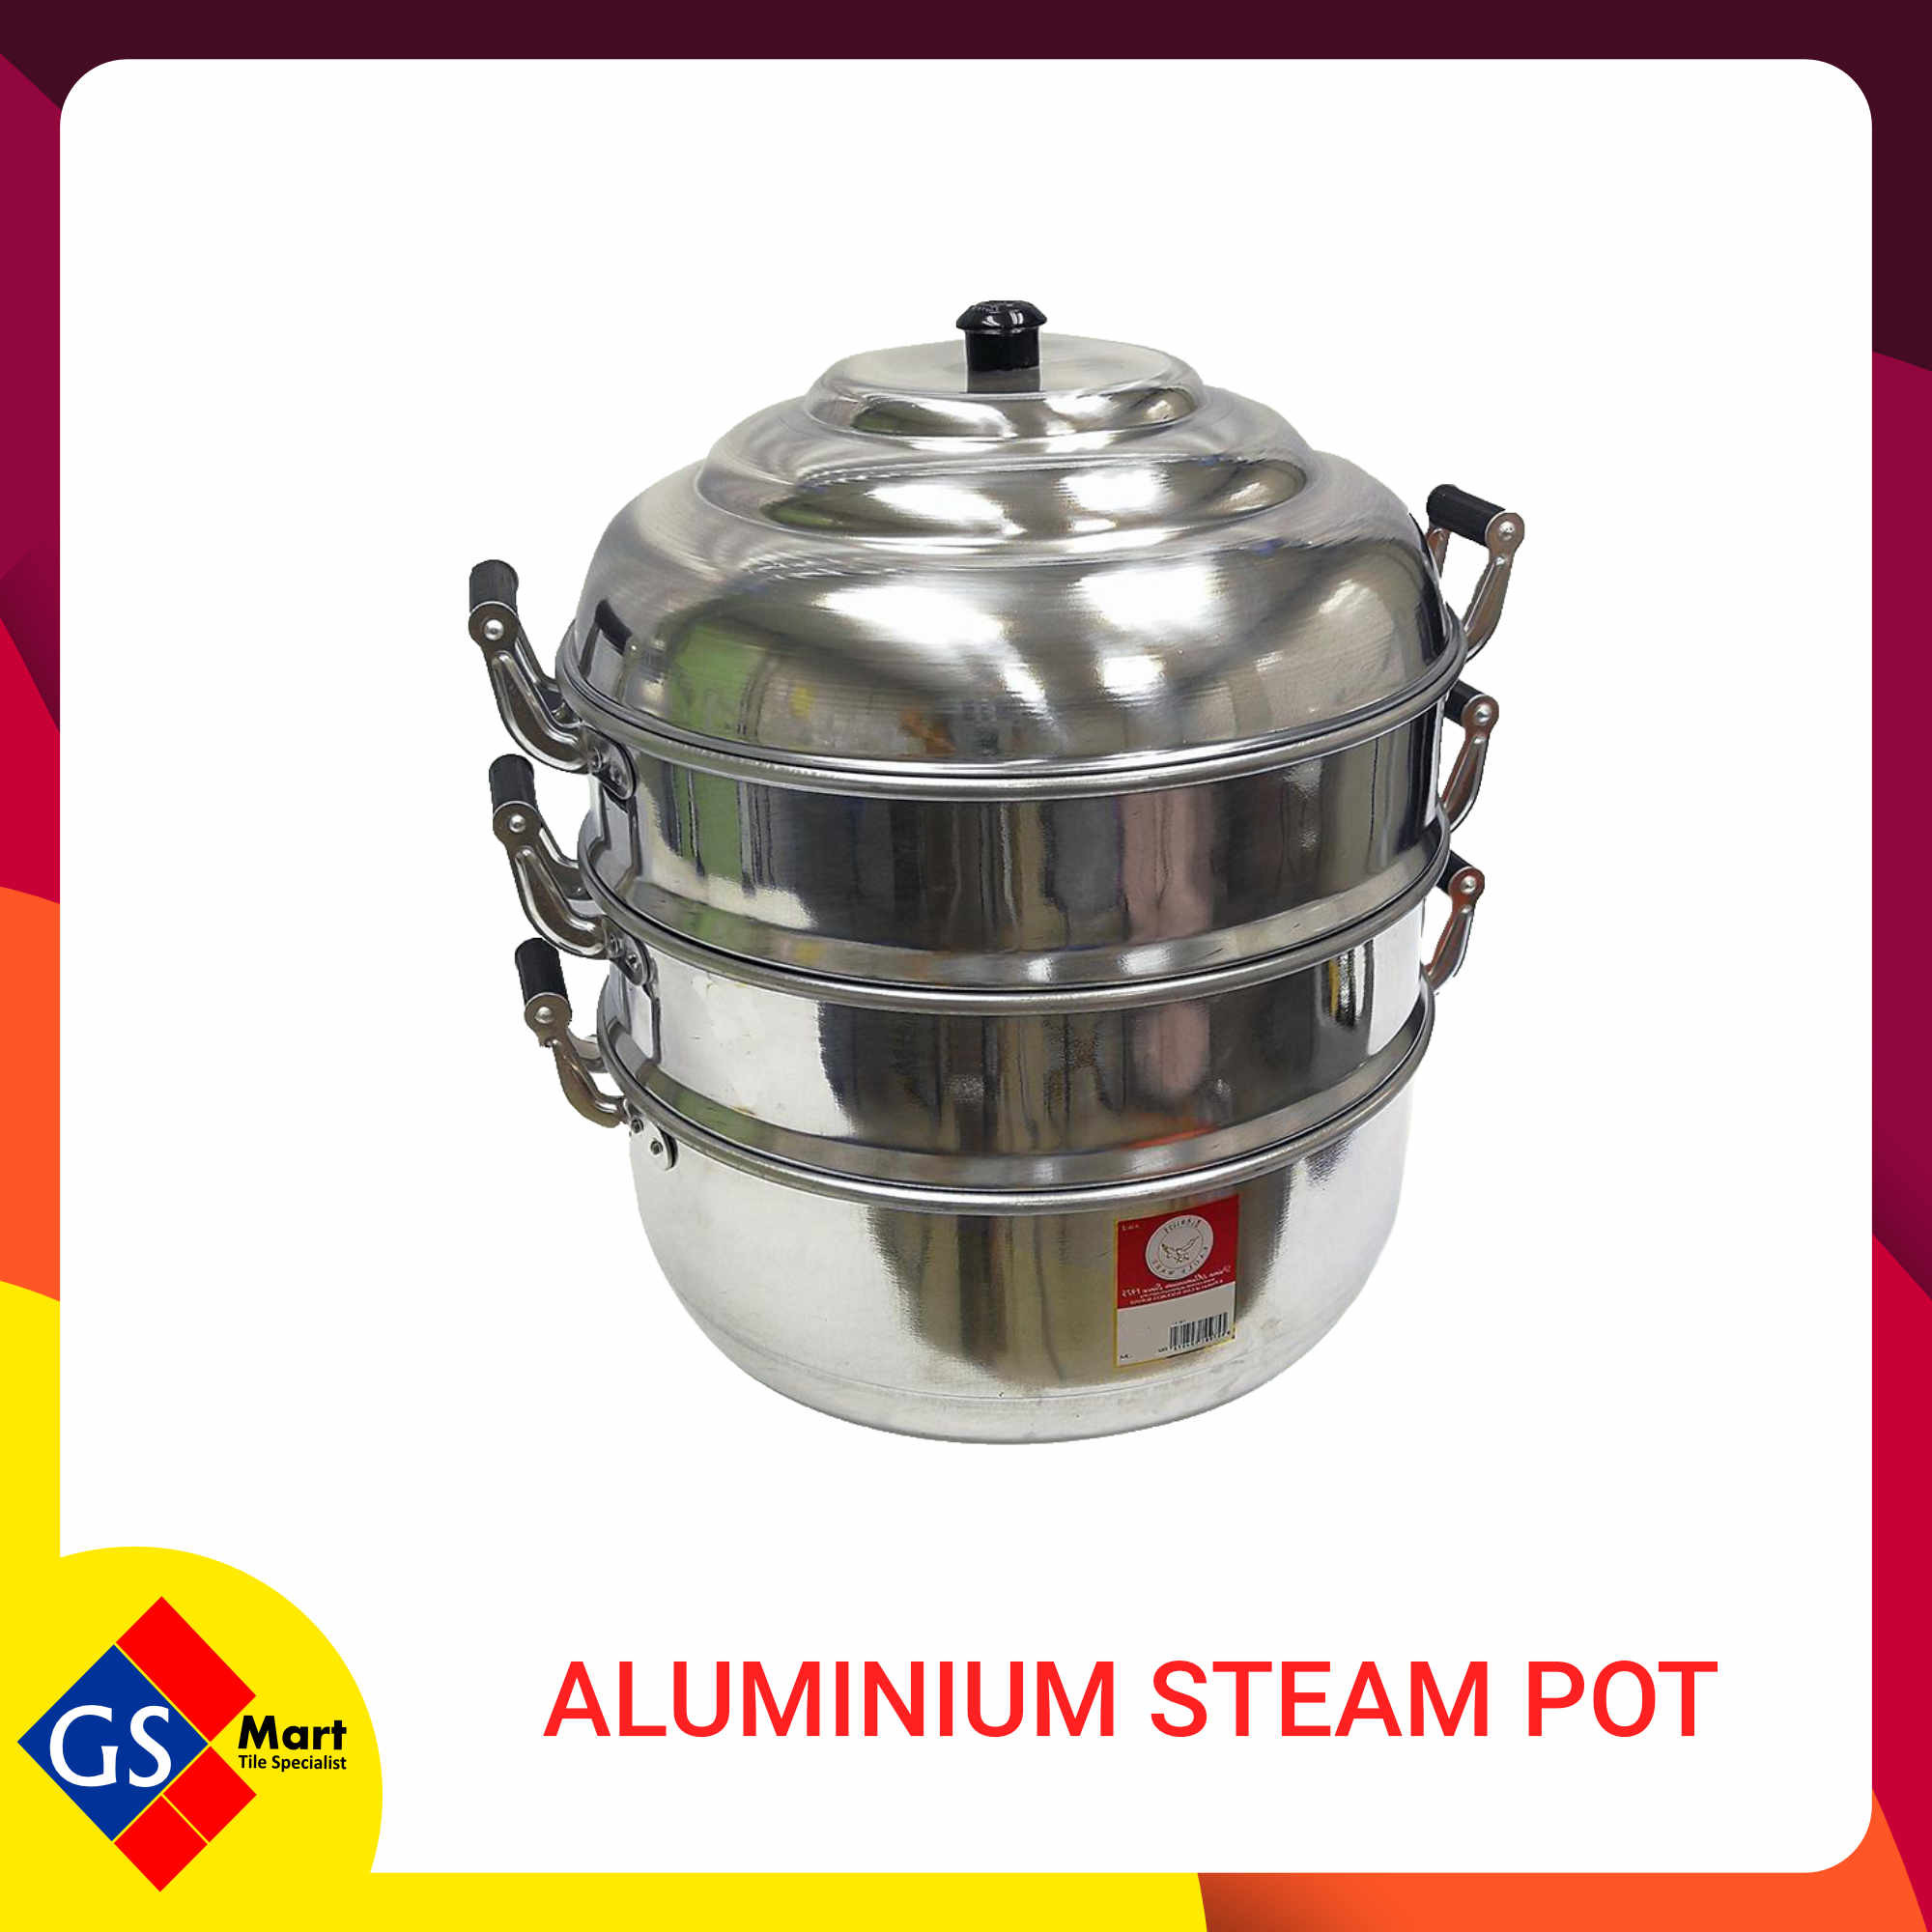 image of 52CM ALUMINIUM STEAM POT